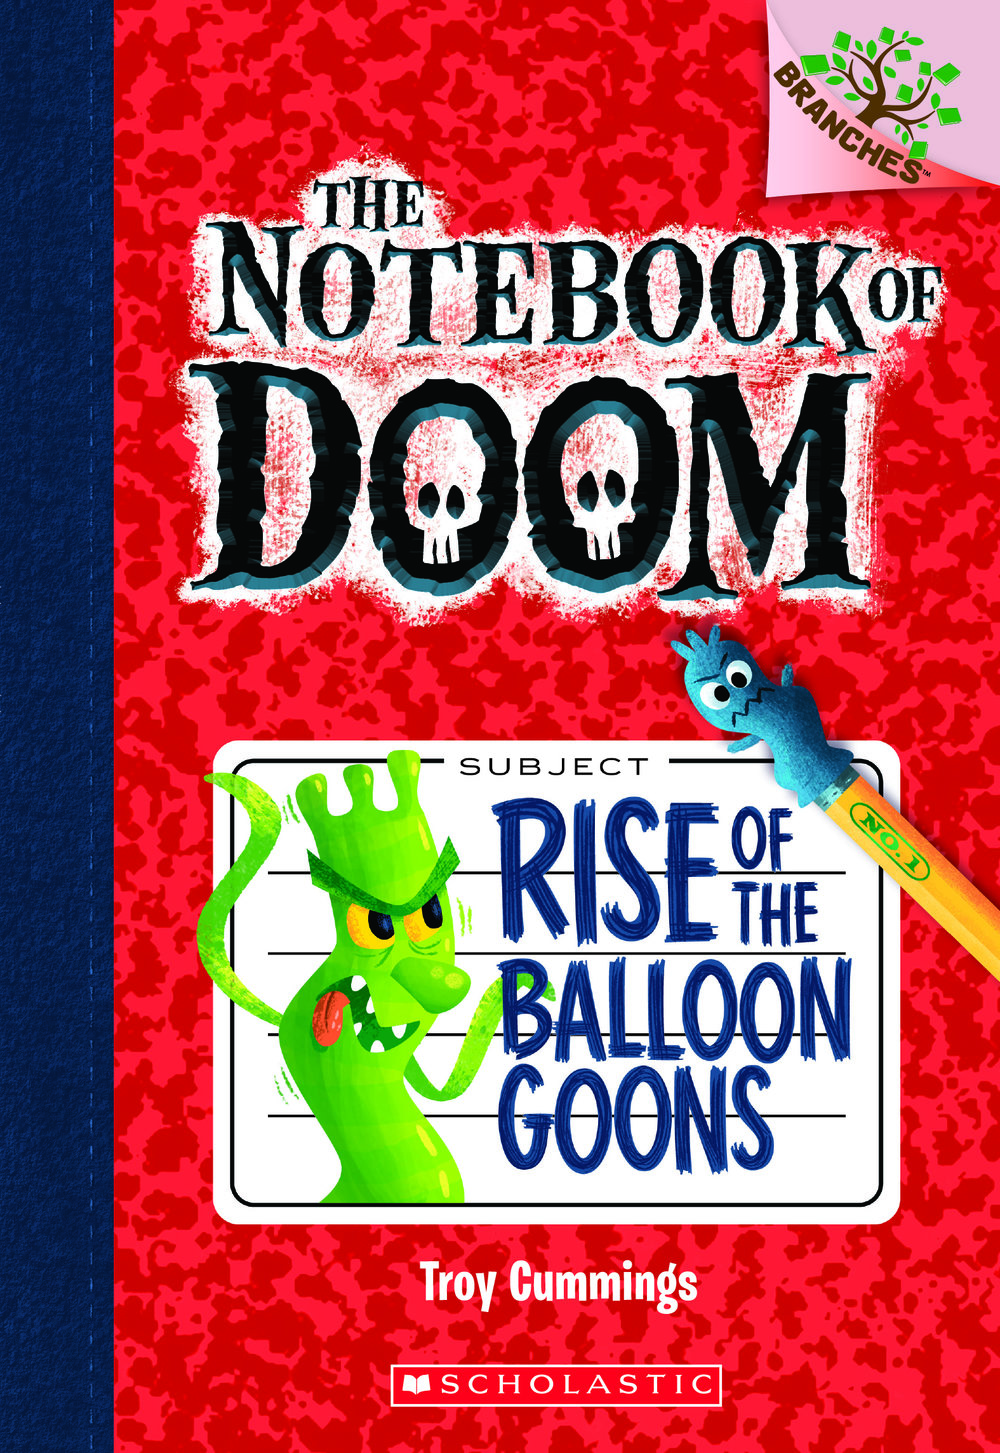 BOOK 1: Rise of the Balloon Goons